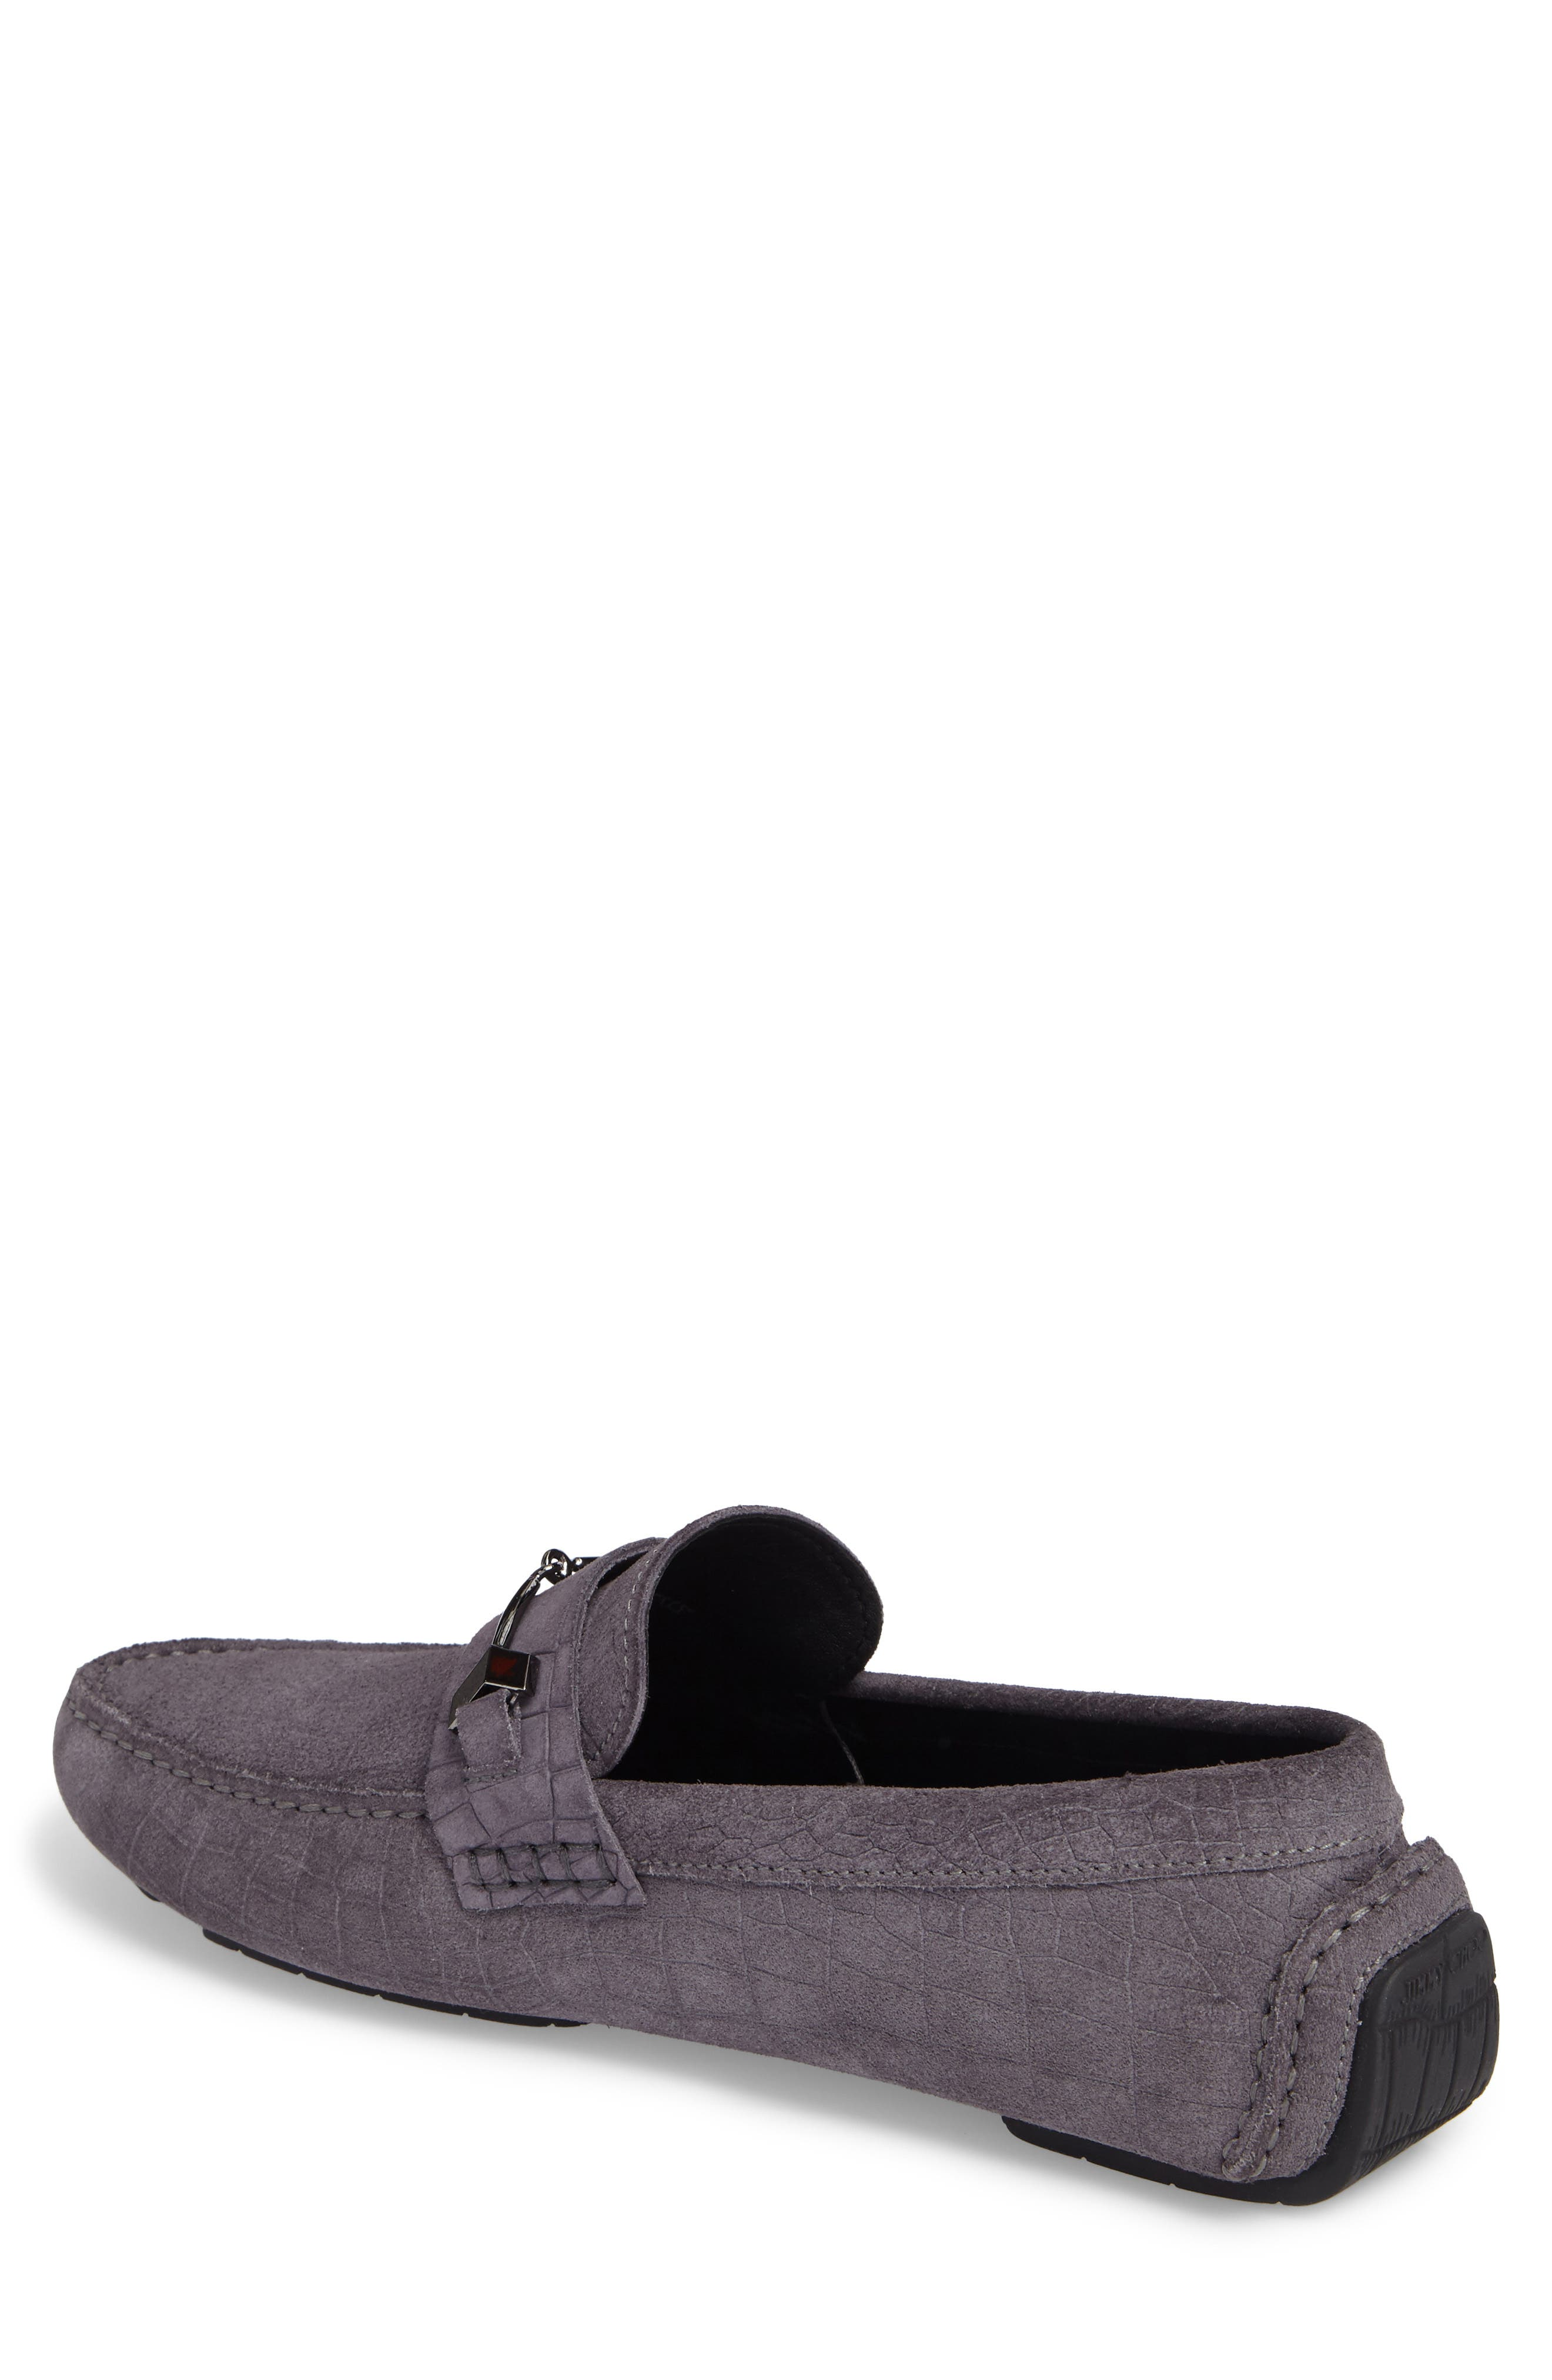 Brewer Croc Textured Driving Loafer,                             Alternate thumbnail 4, color,